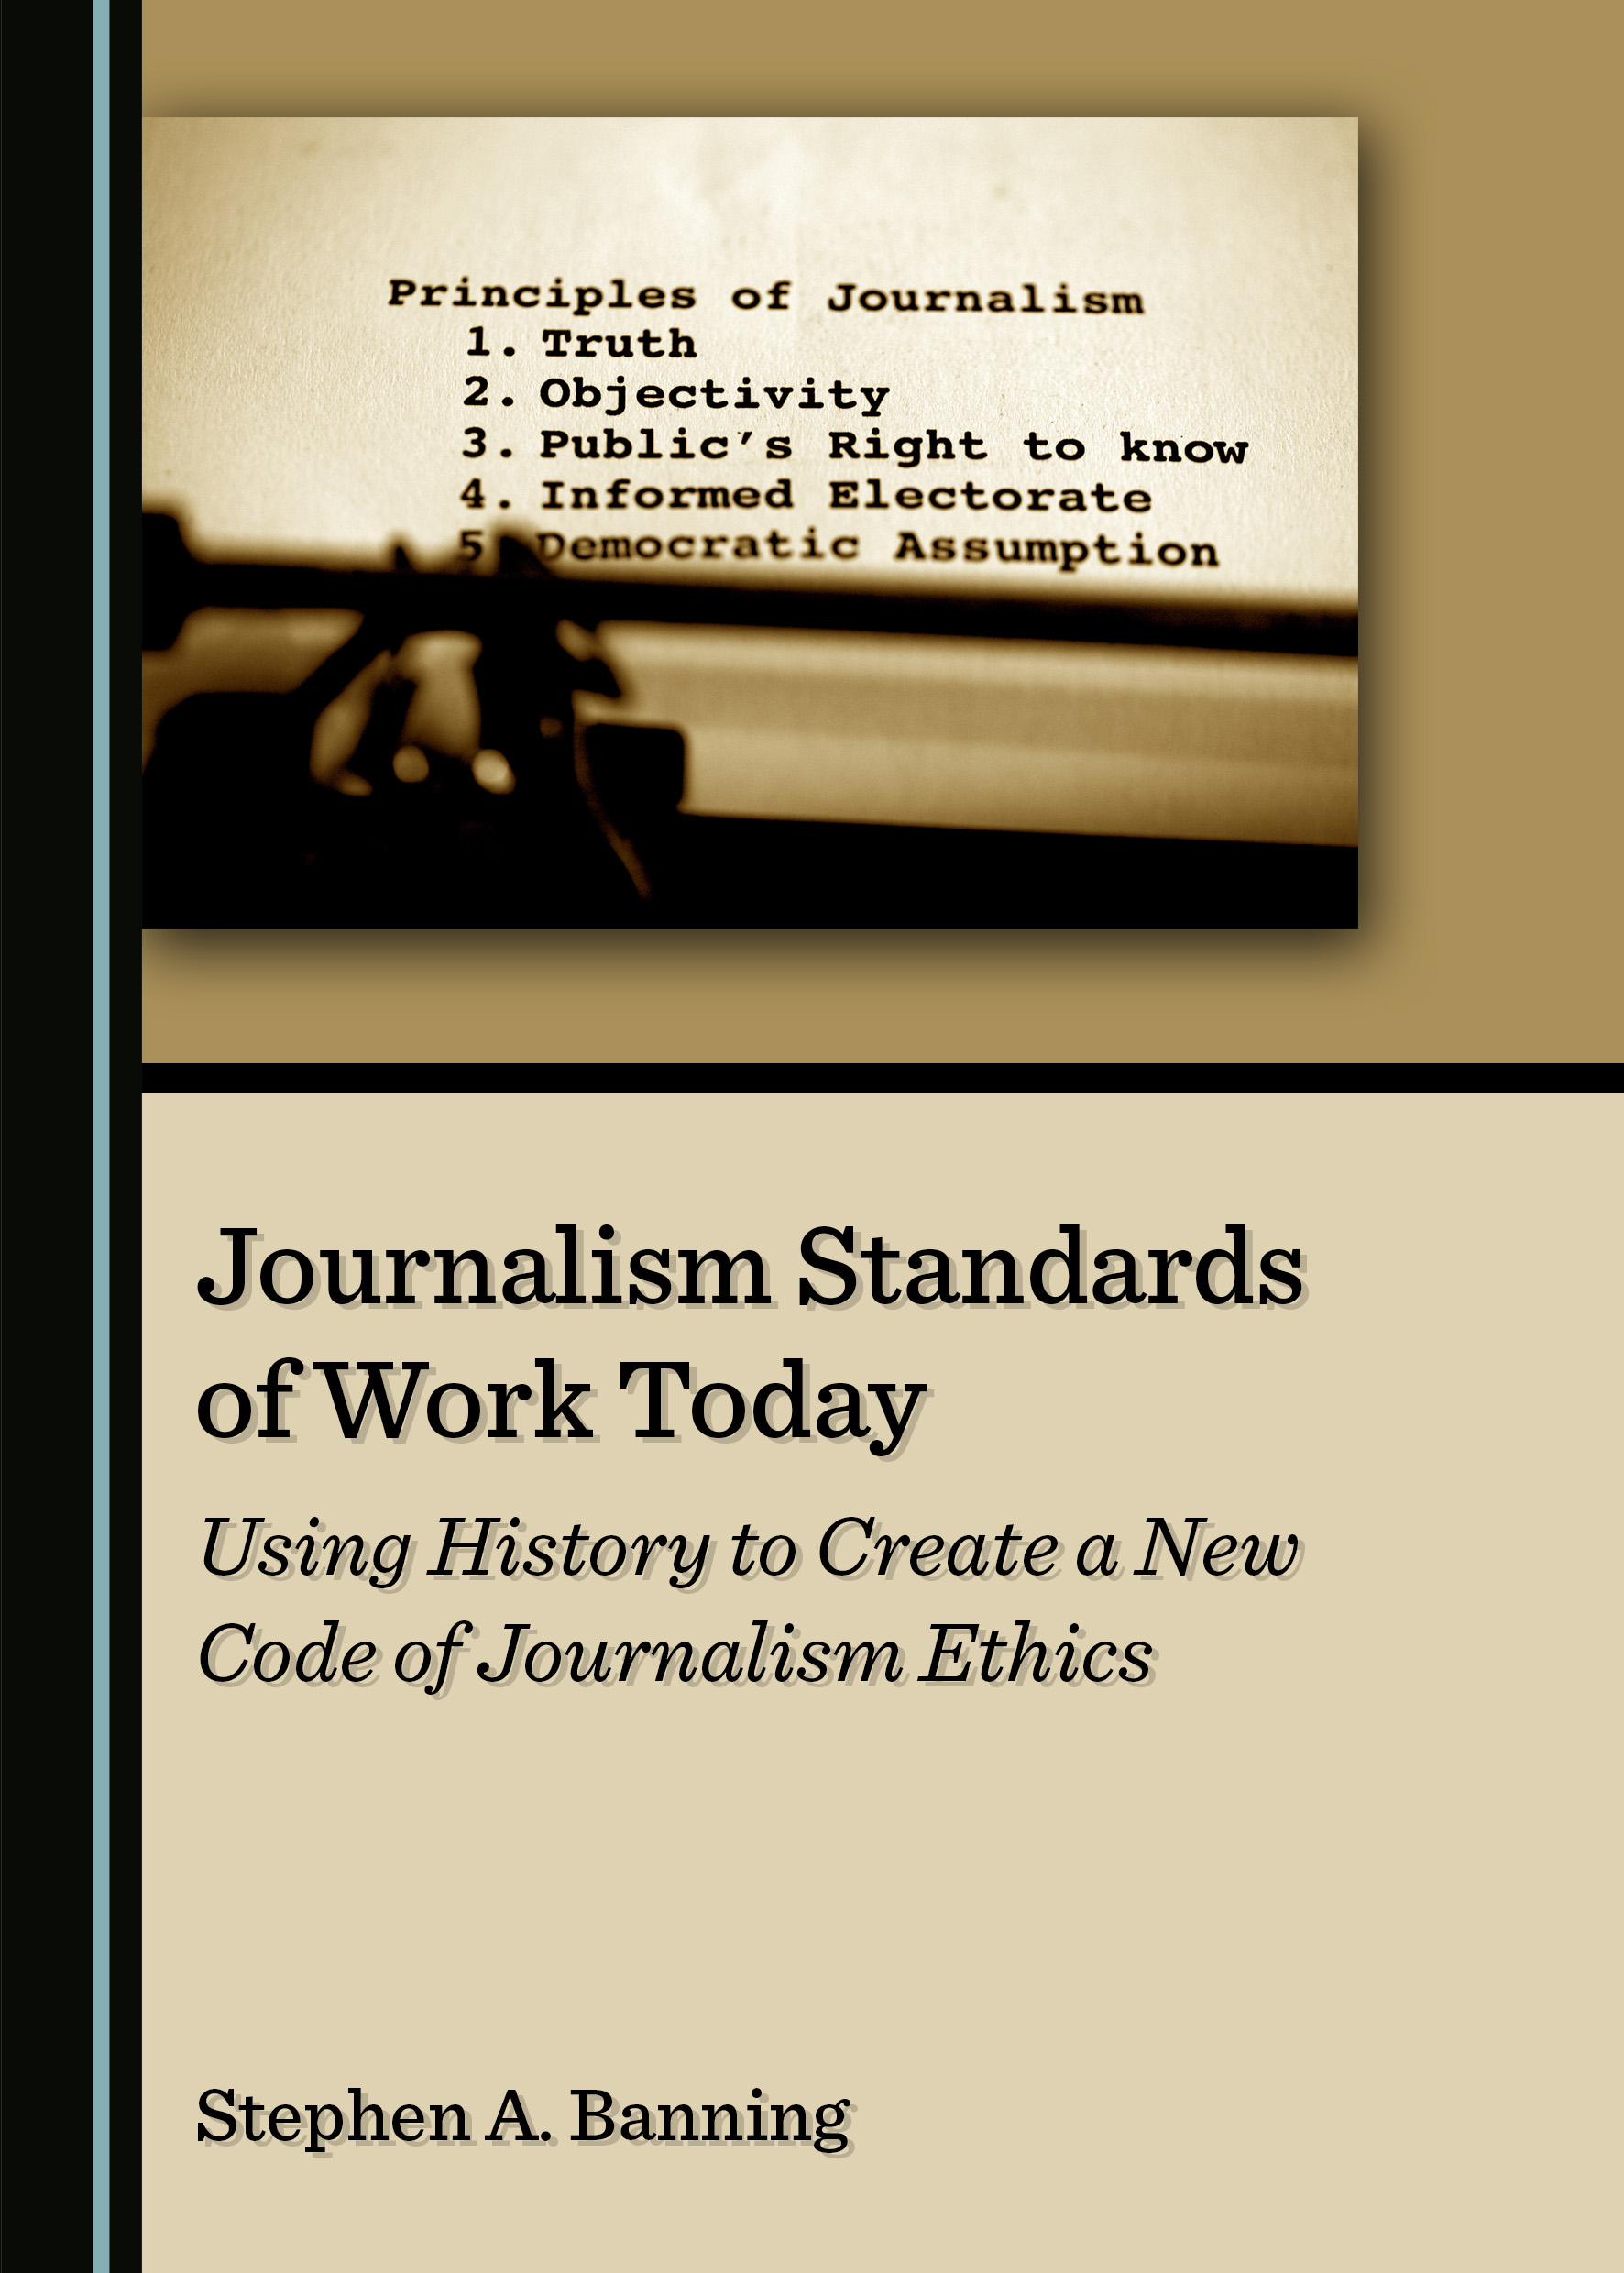 Journalism Standards of Work Today: Using History to Create a New Code of Journalism Ethics